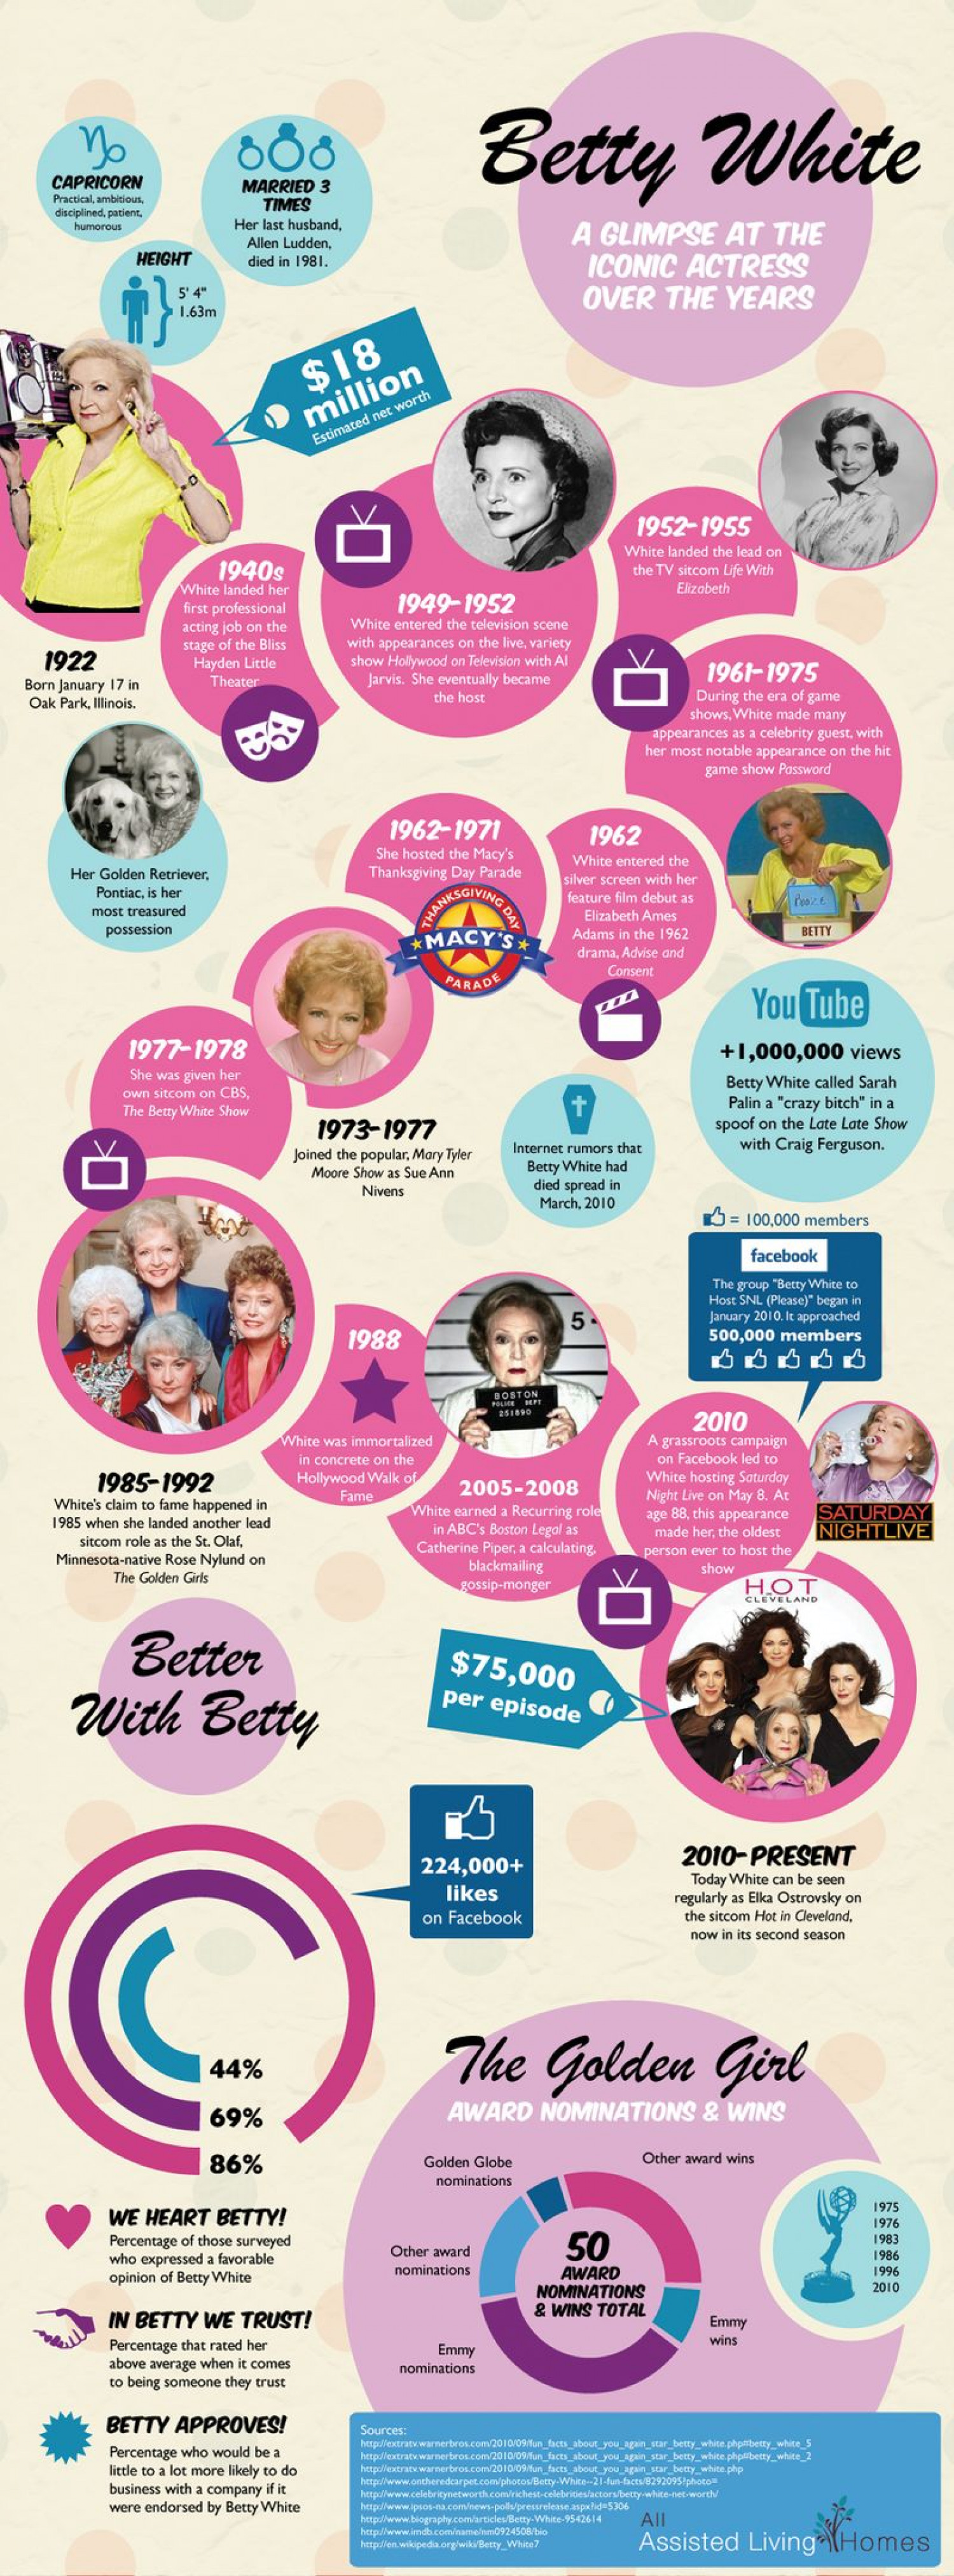 Betty White: A Glimpse at the Iconic Actress Over the Years Infographic